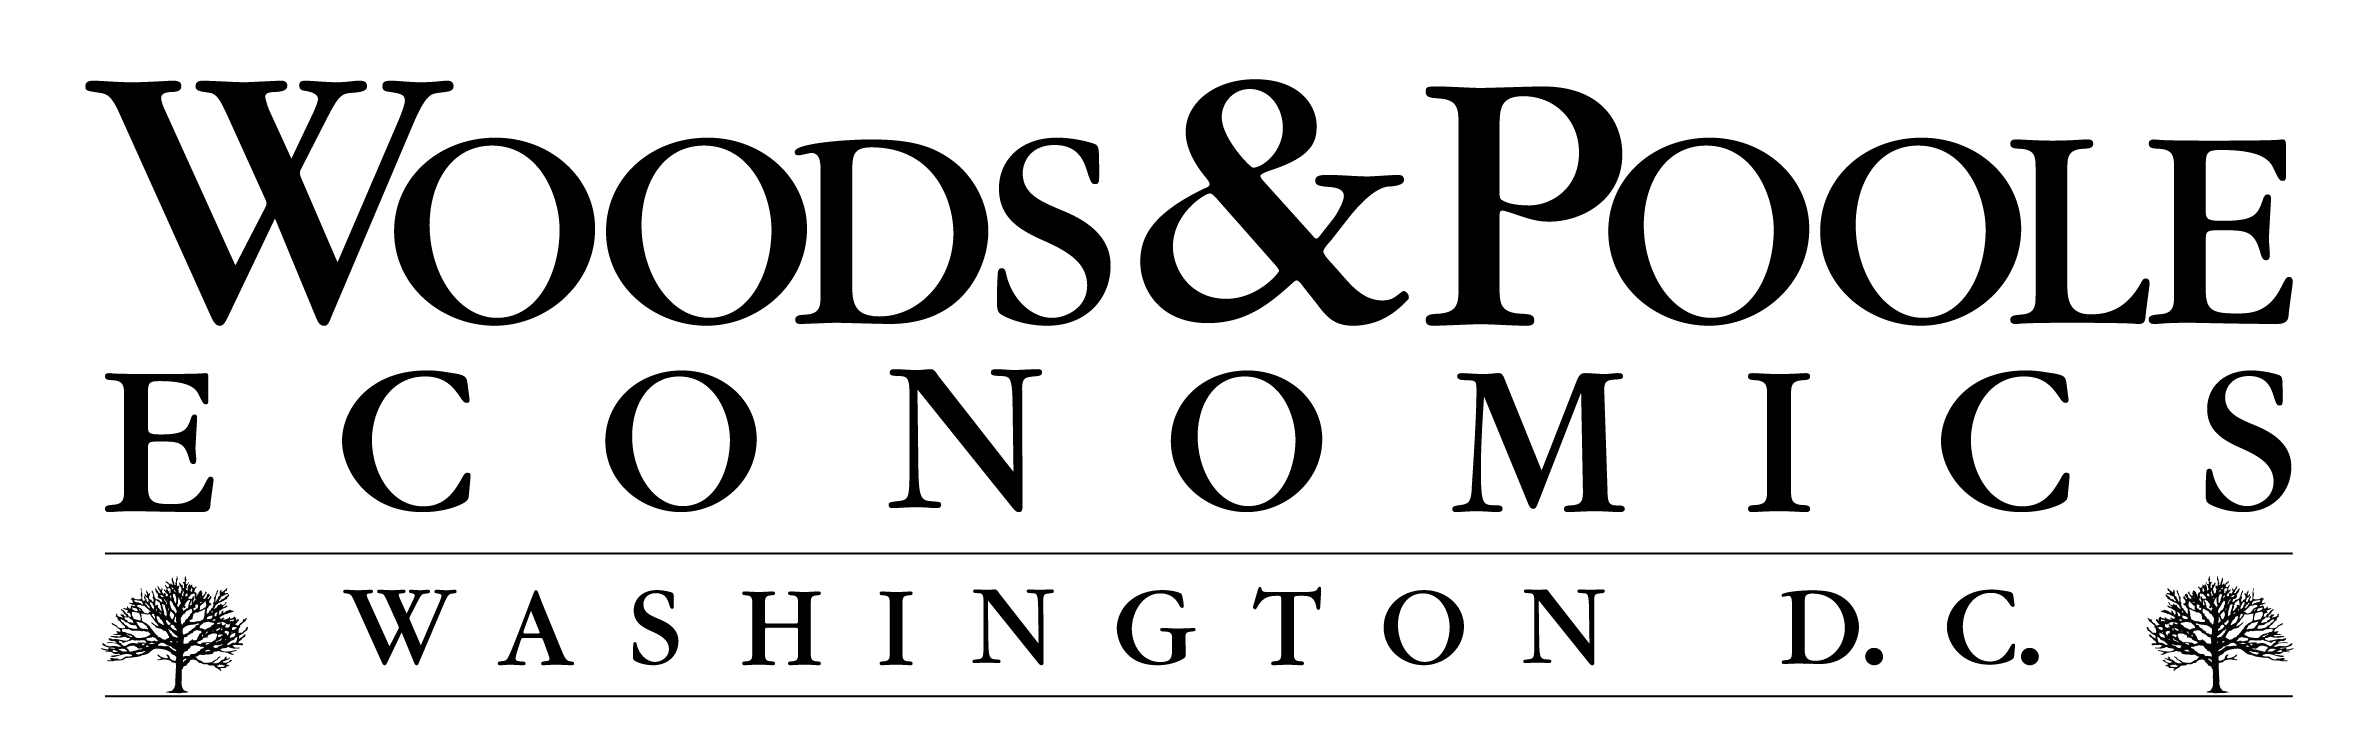 WASHINGTON-ARLINGTON-ALEXANDRIA DC-VA-MD-WV (FIPS 47900) | Woods & Poole Economics, Inc